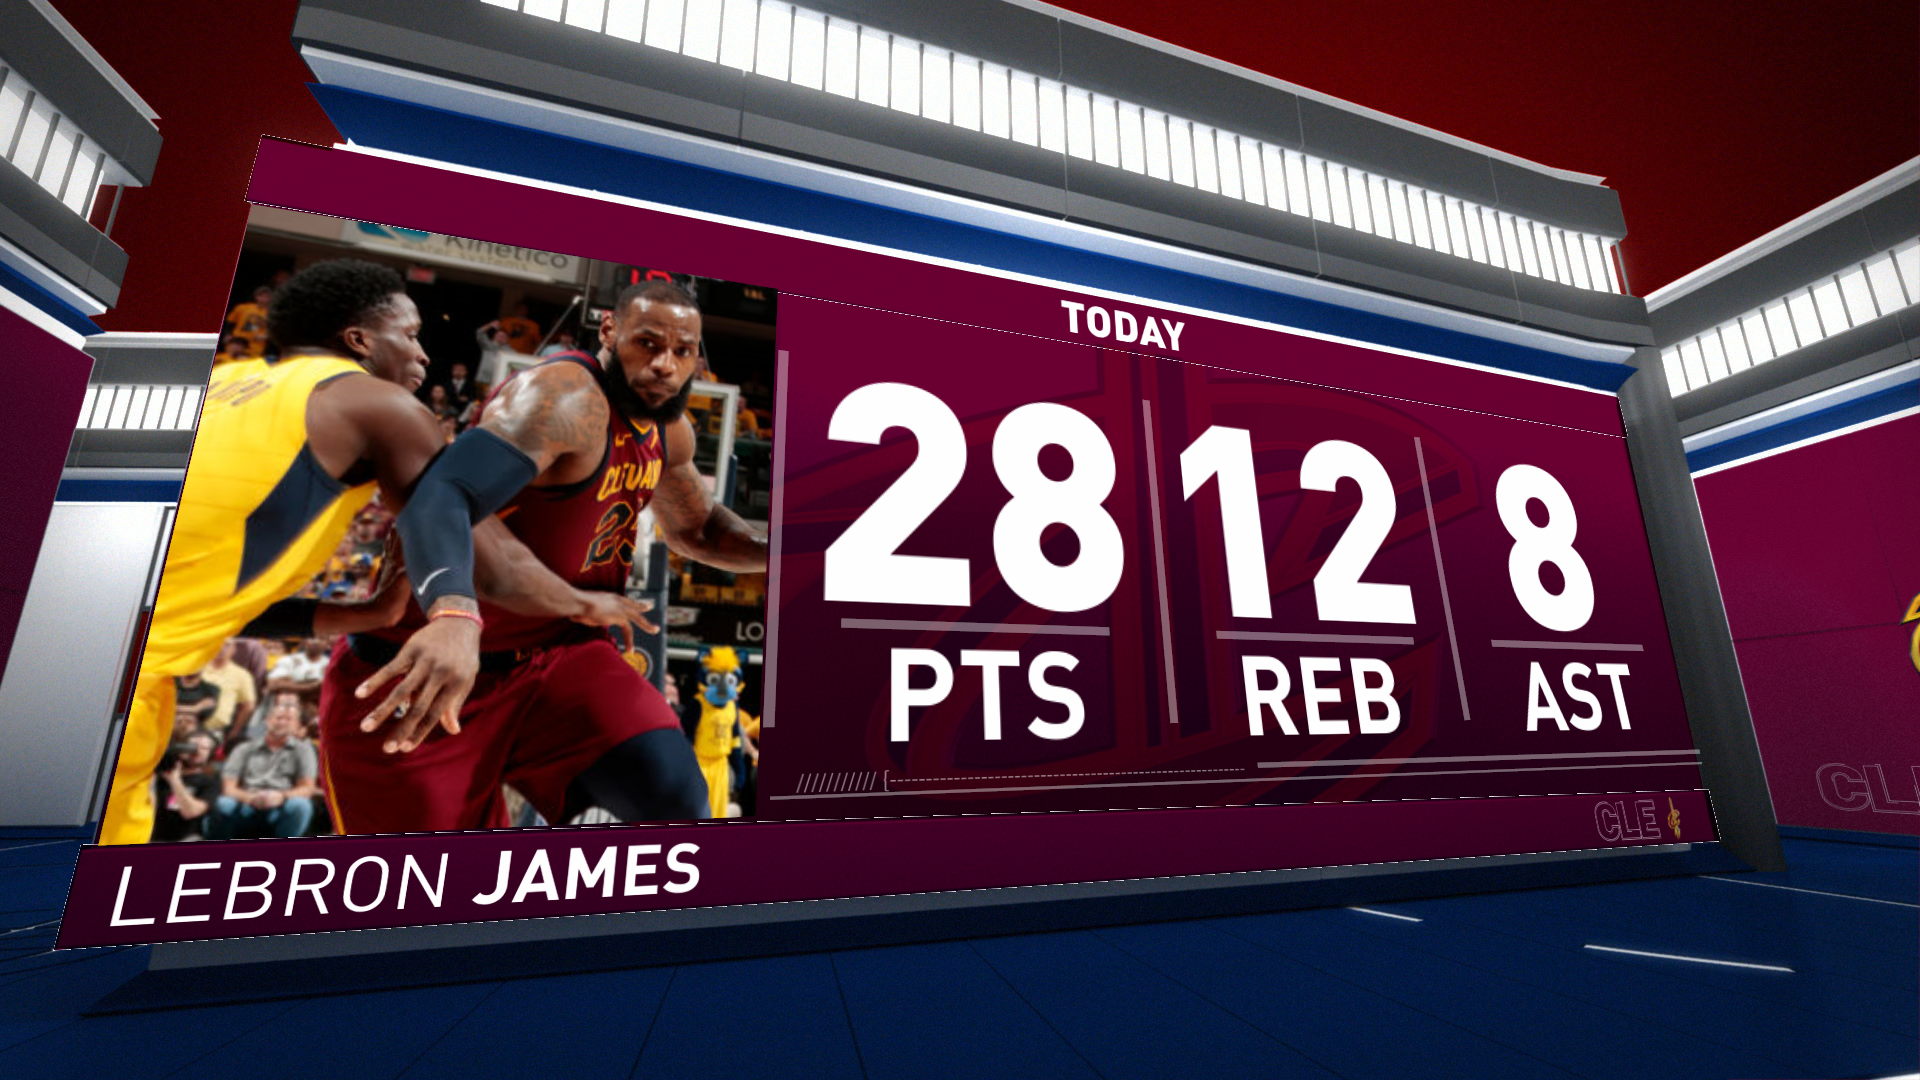 LeBron James scores 28 points in Game 3 loss